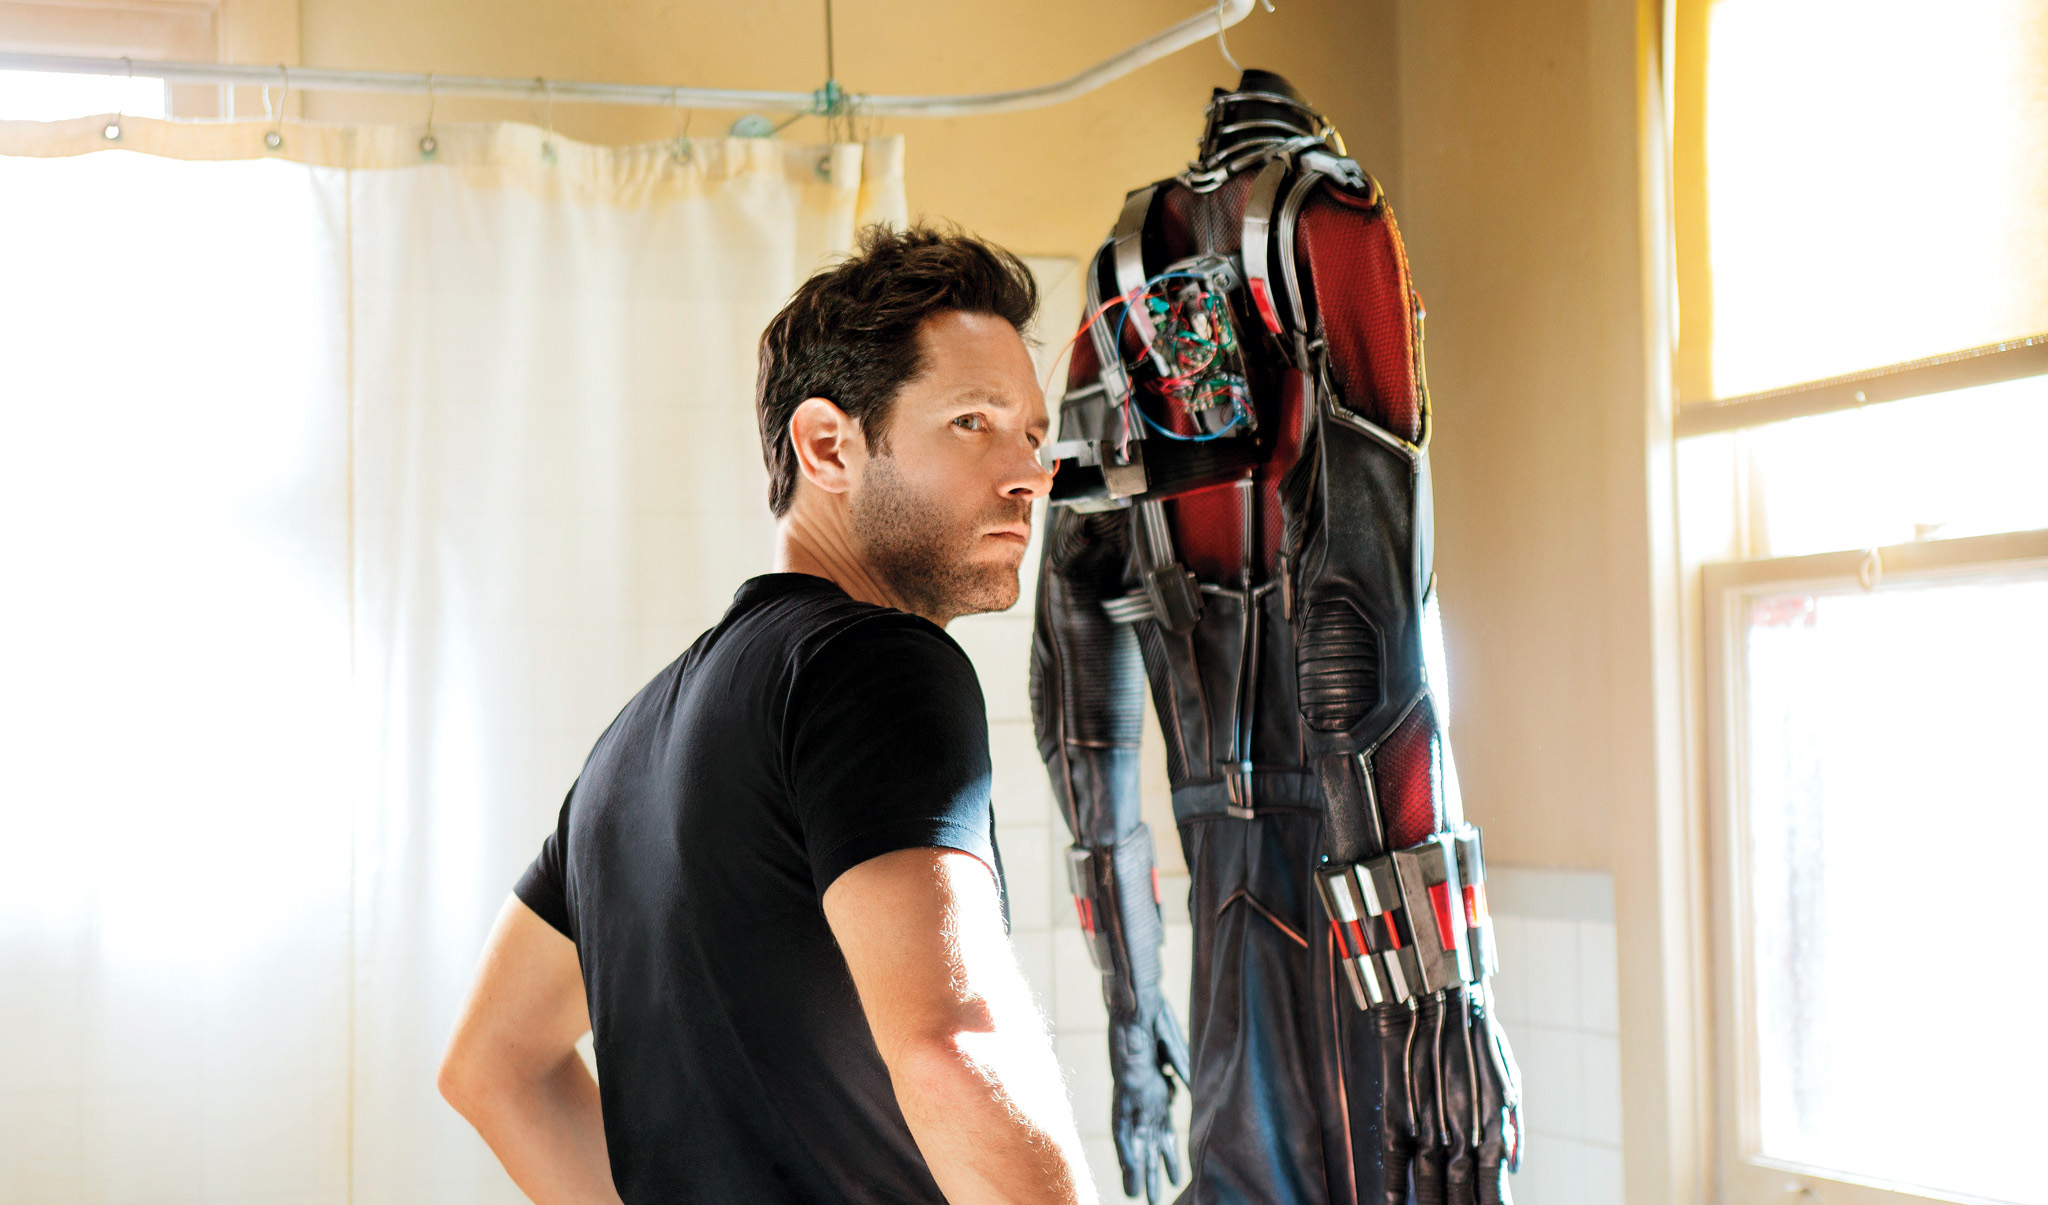 Paul Rudd stars as Scott Lang in 'Ant-Man', directed by Peyton Reed.